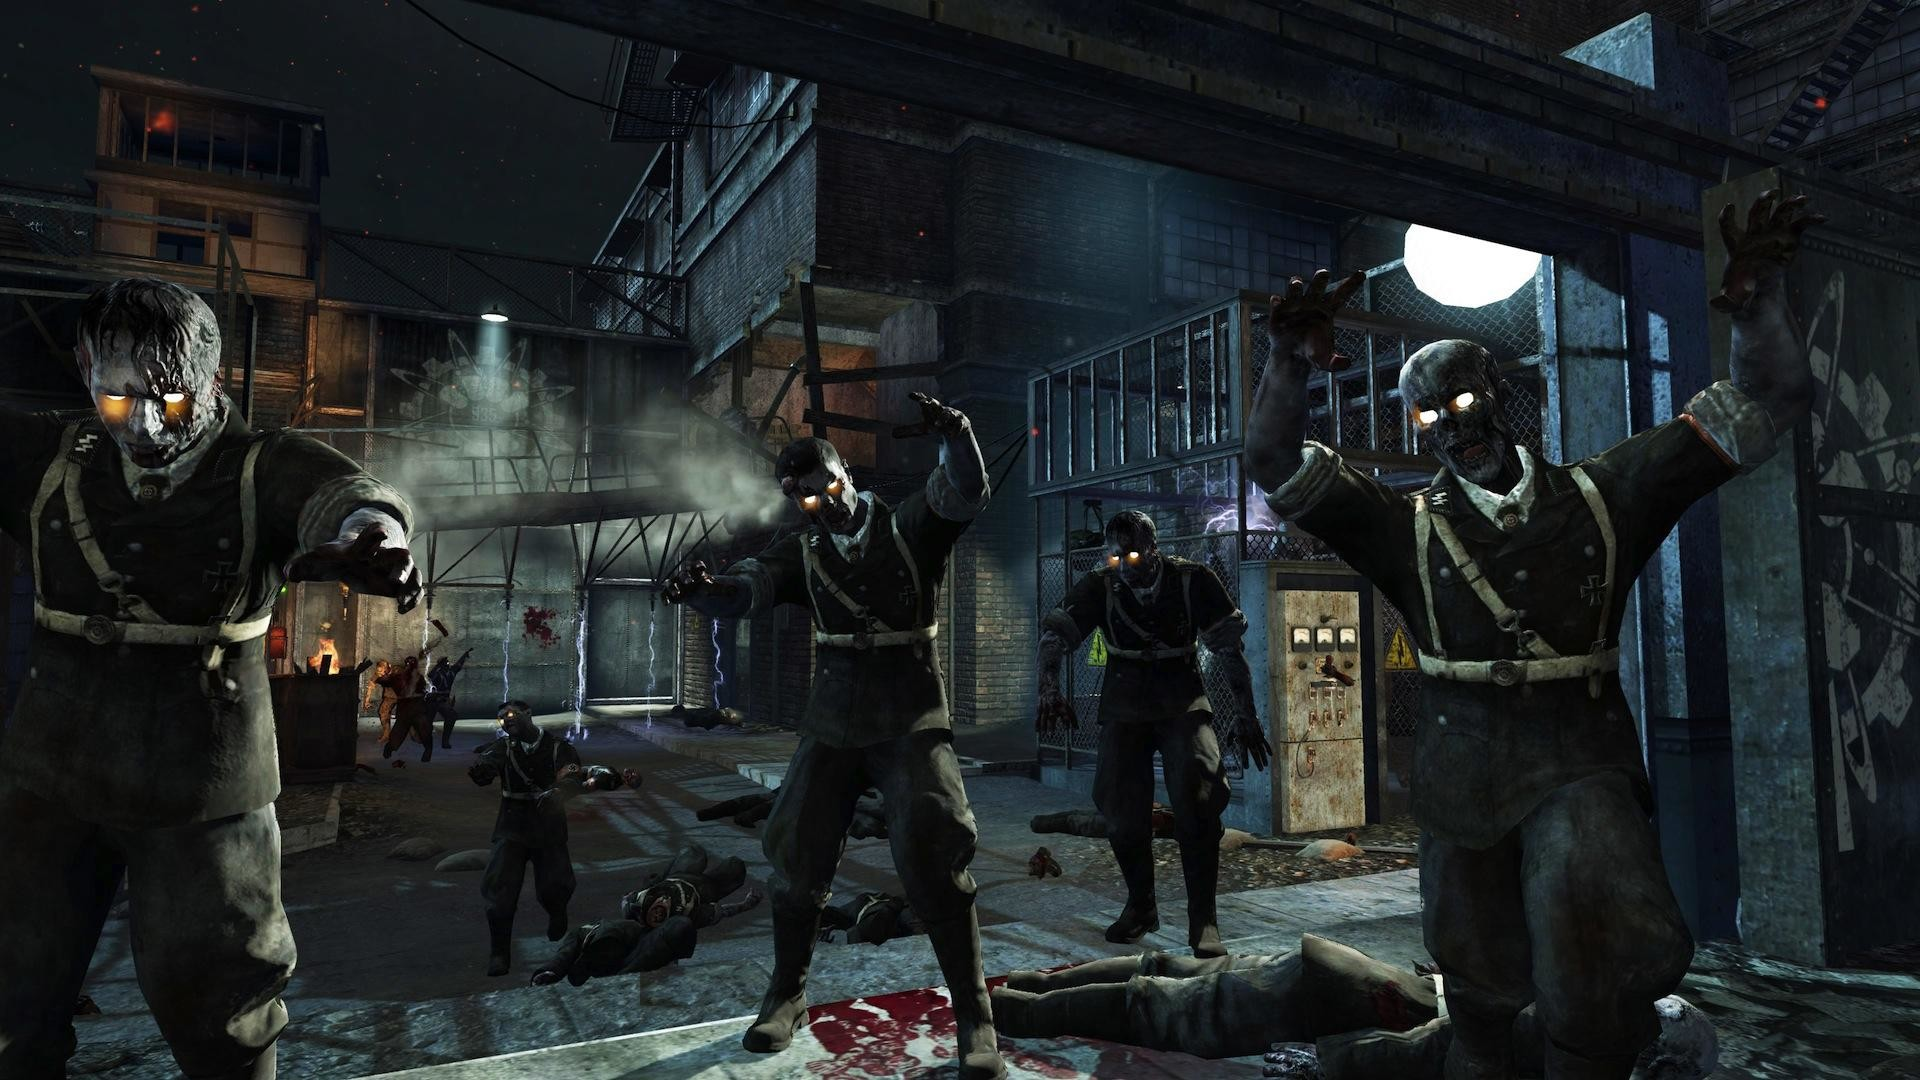 Zombie Chronicles is coming to Black Ops III. Credit: Treyarch